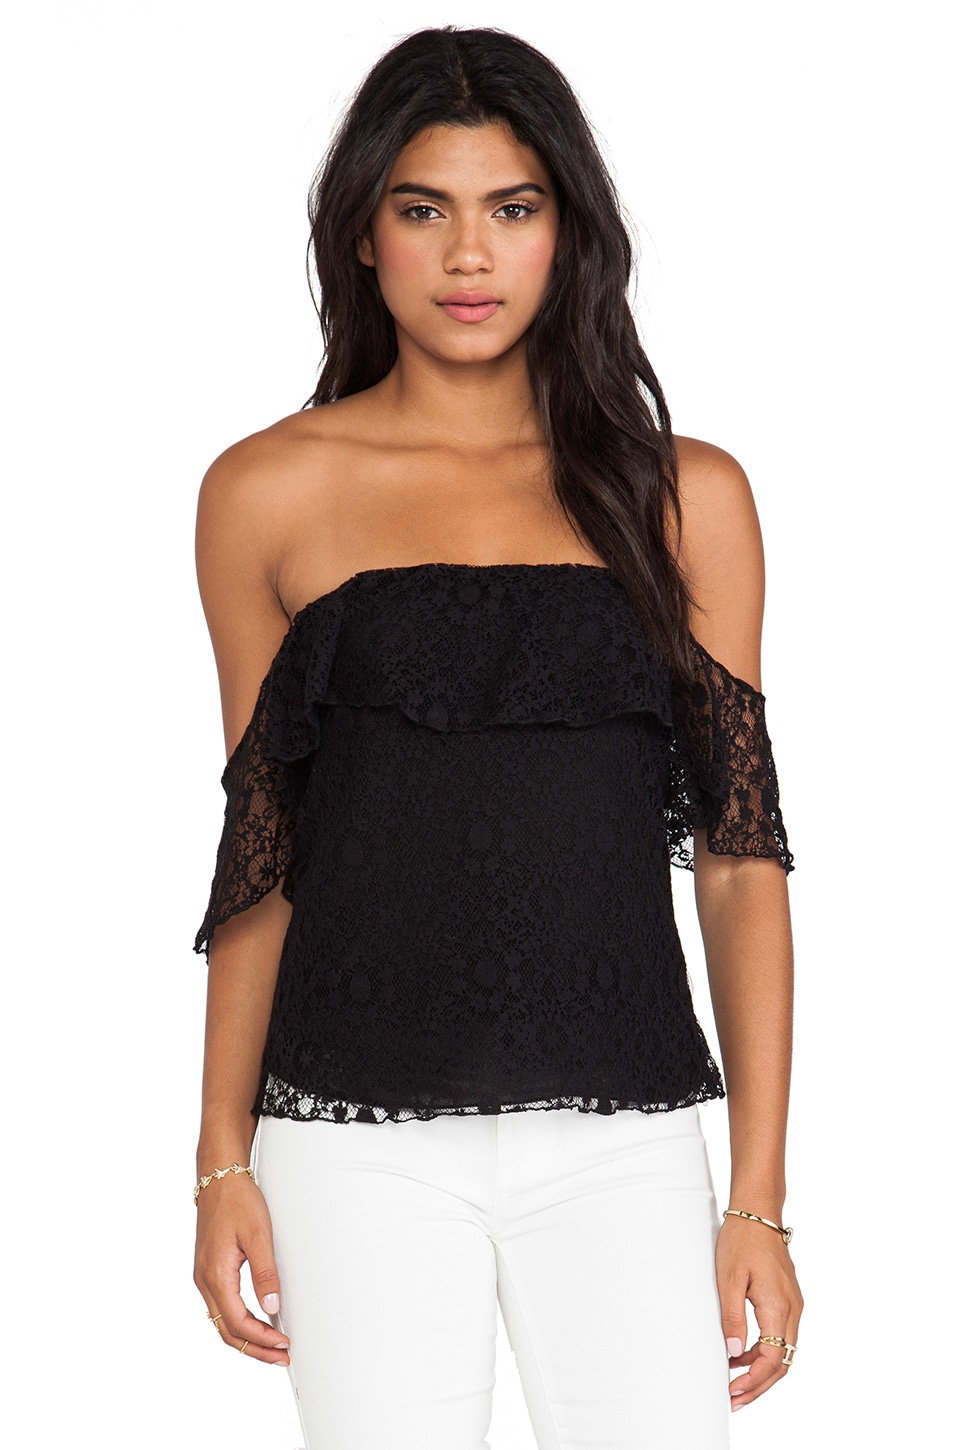 Boulee Emily Top in Black Lace